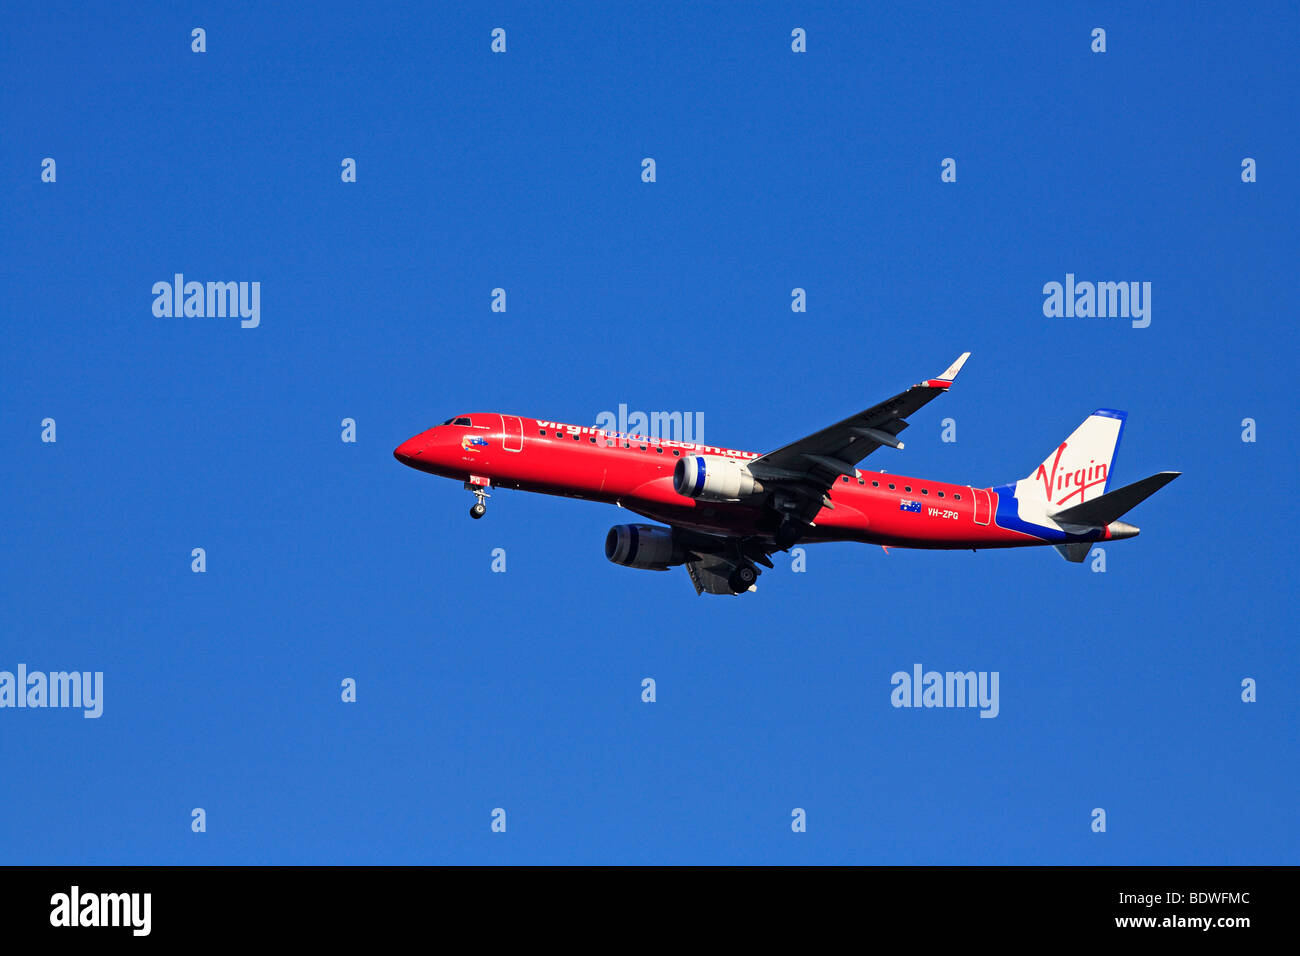 Virgin Embraer 190 Aircraft in flight - Stock Image